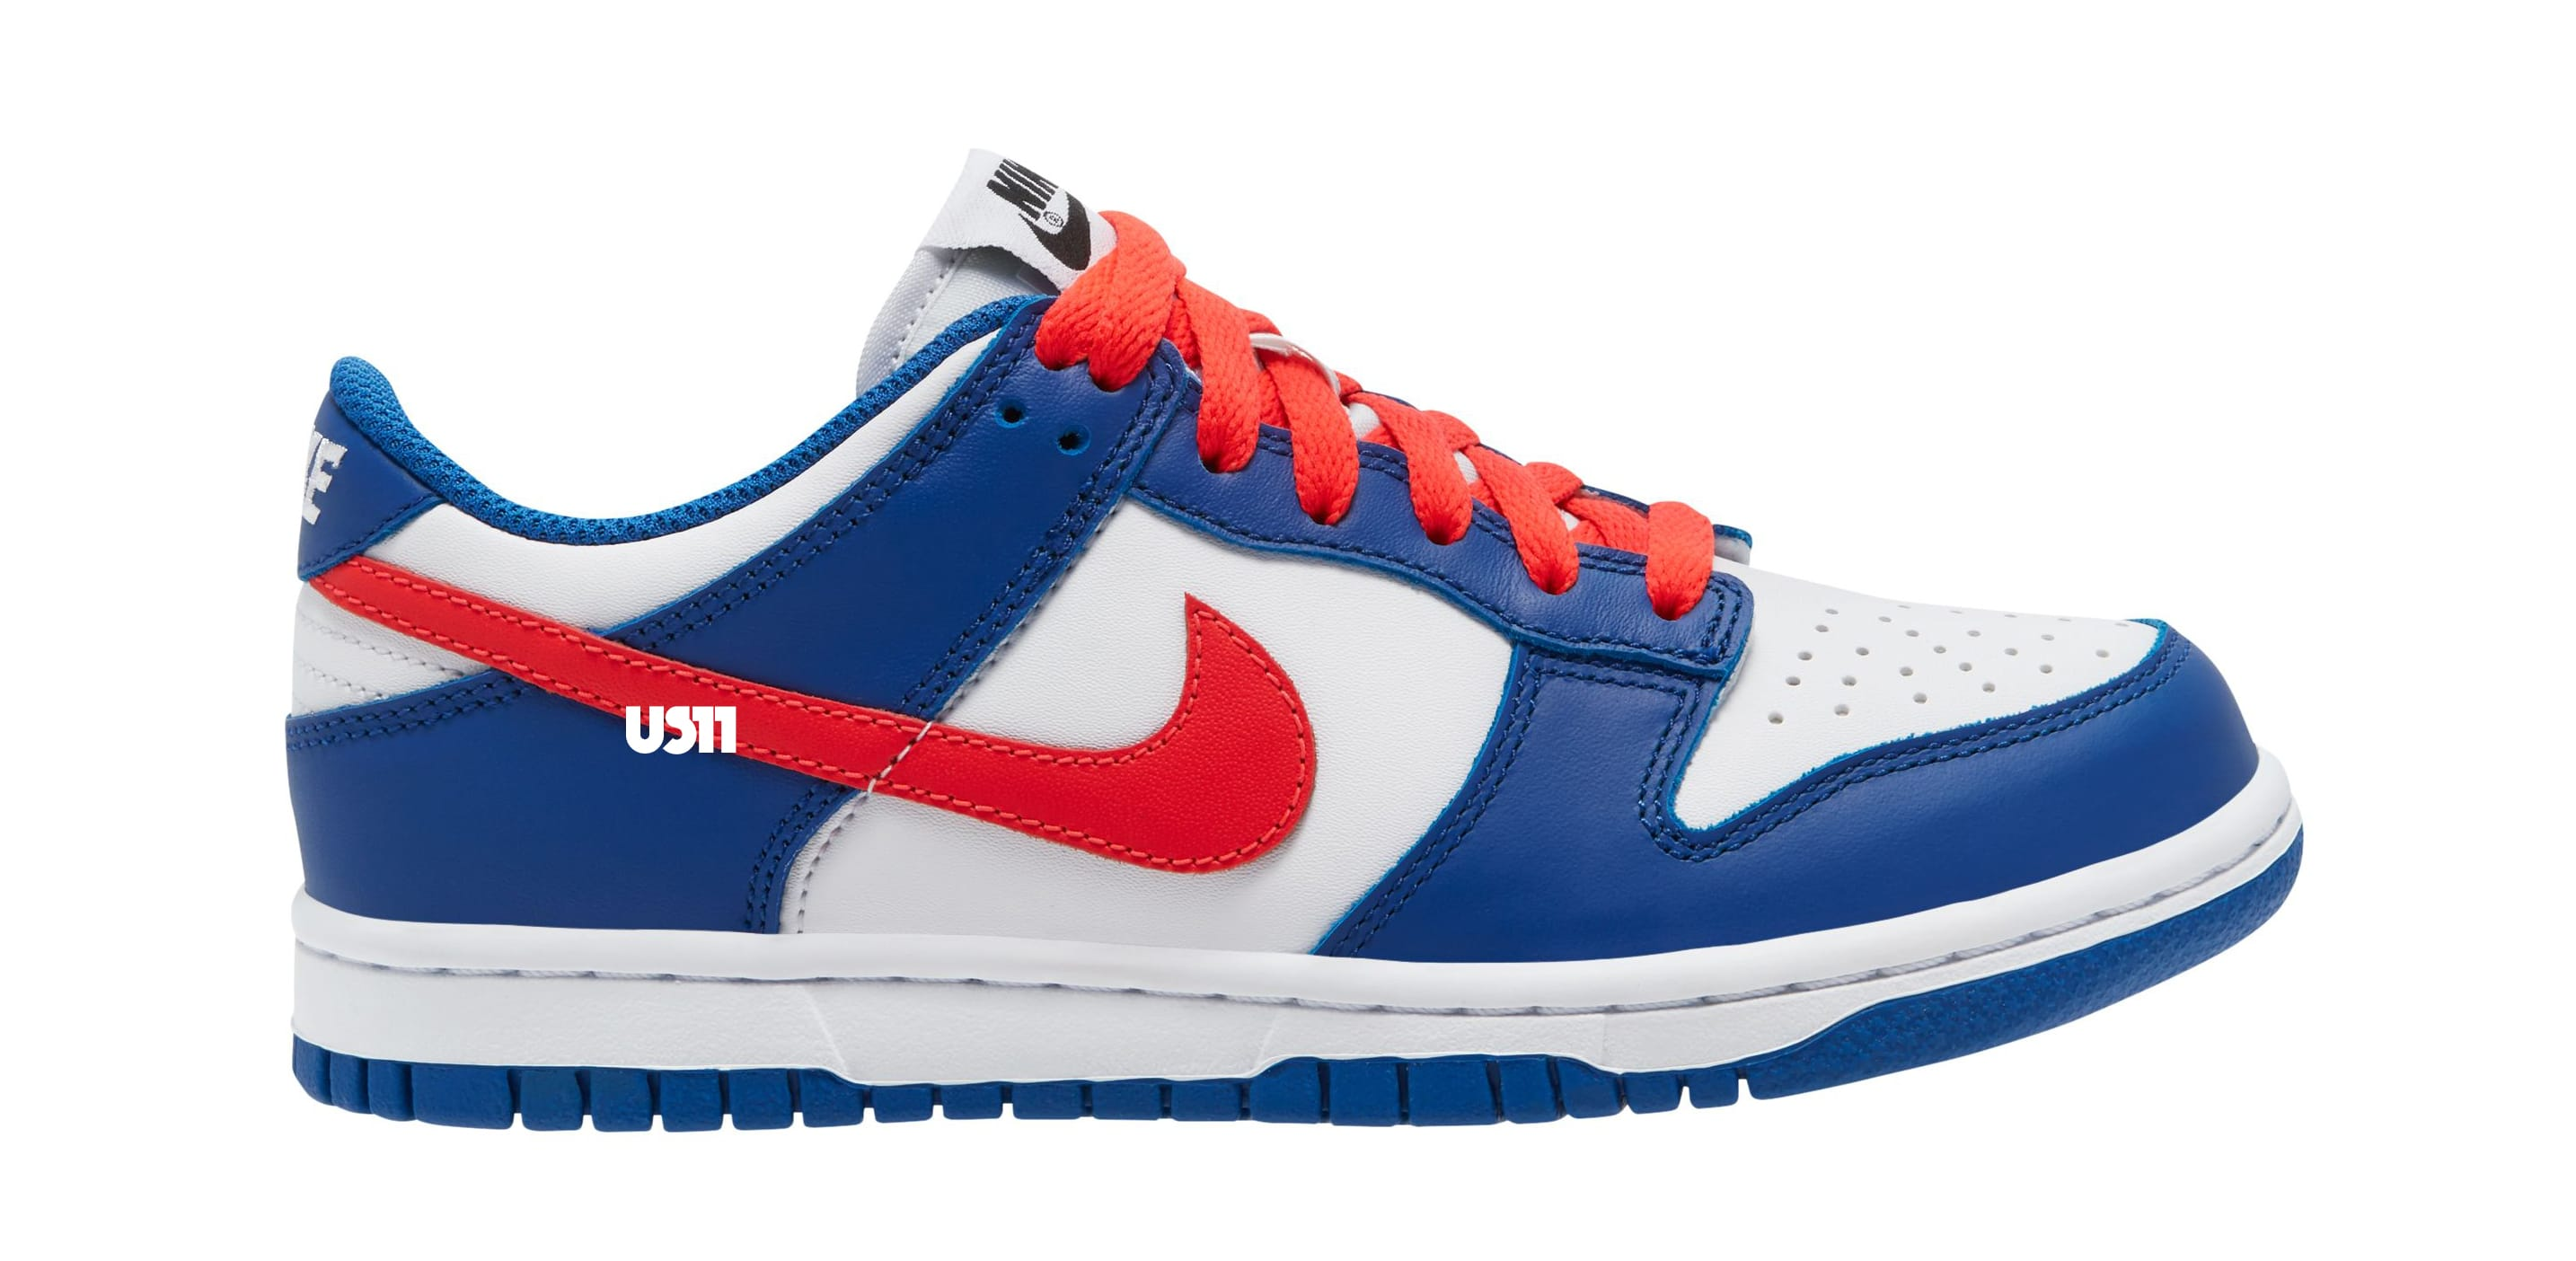 Nike Dunk Low GS White/Blue/Red Lateral